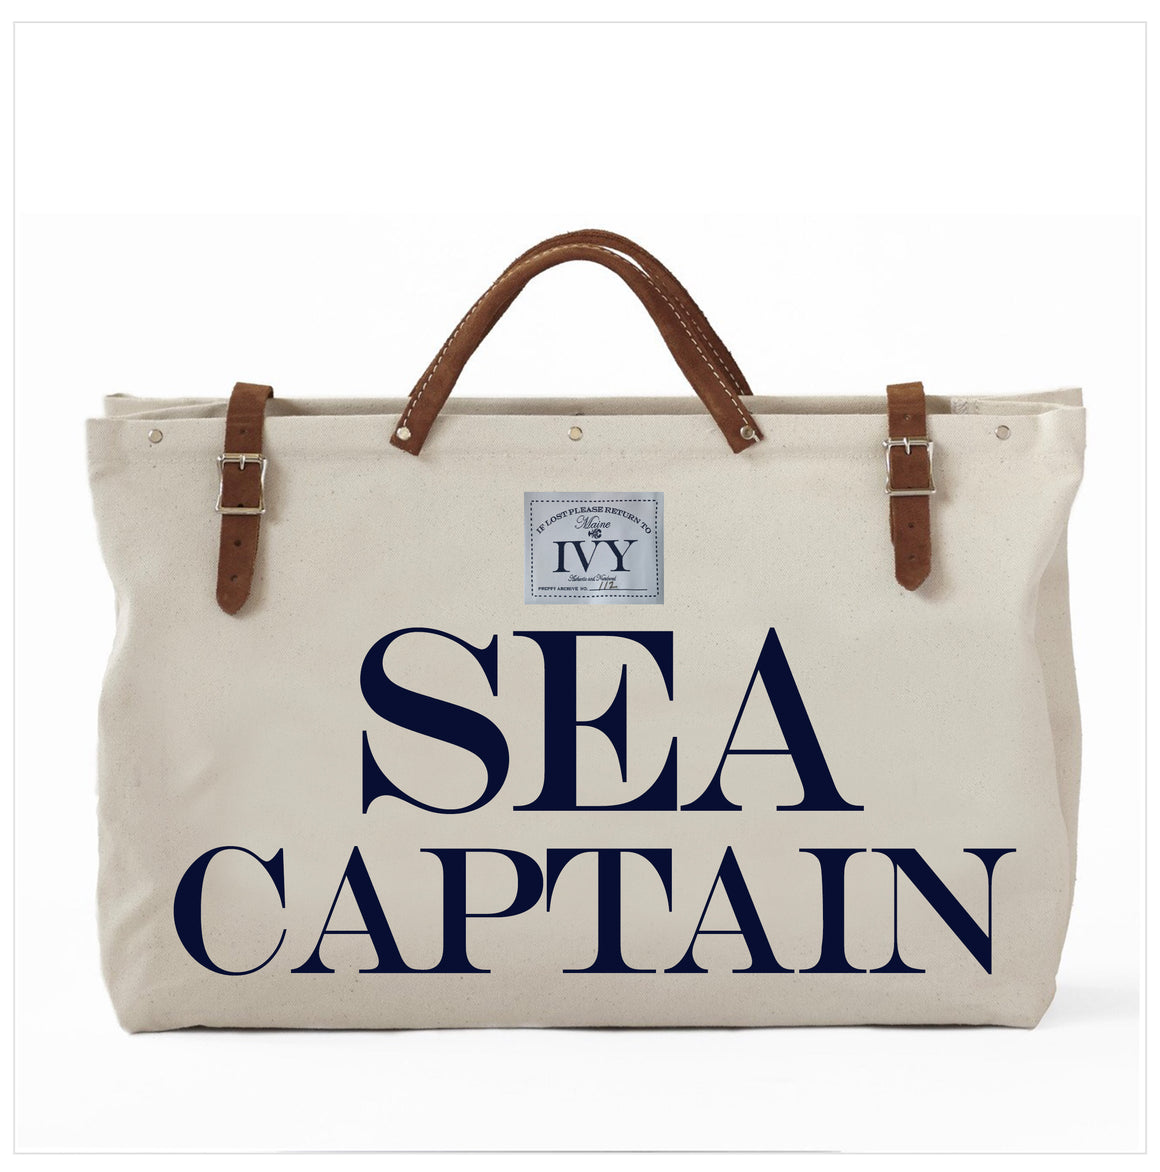 SEA CAPTAIN CANVAS TOTE